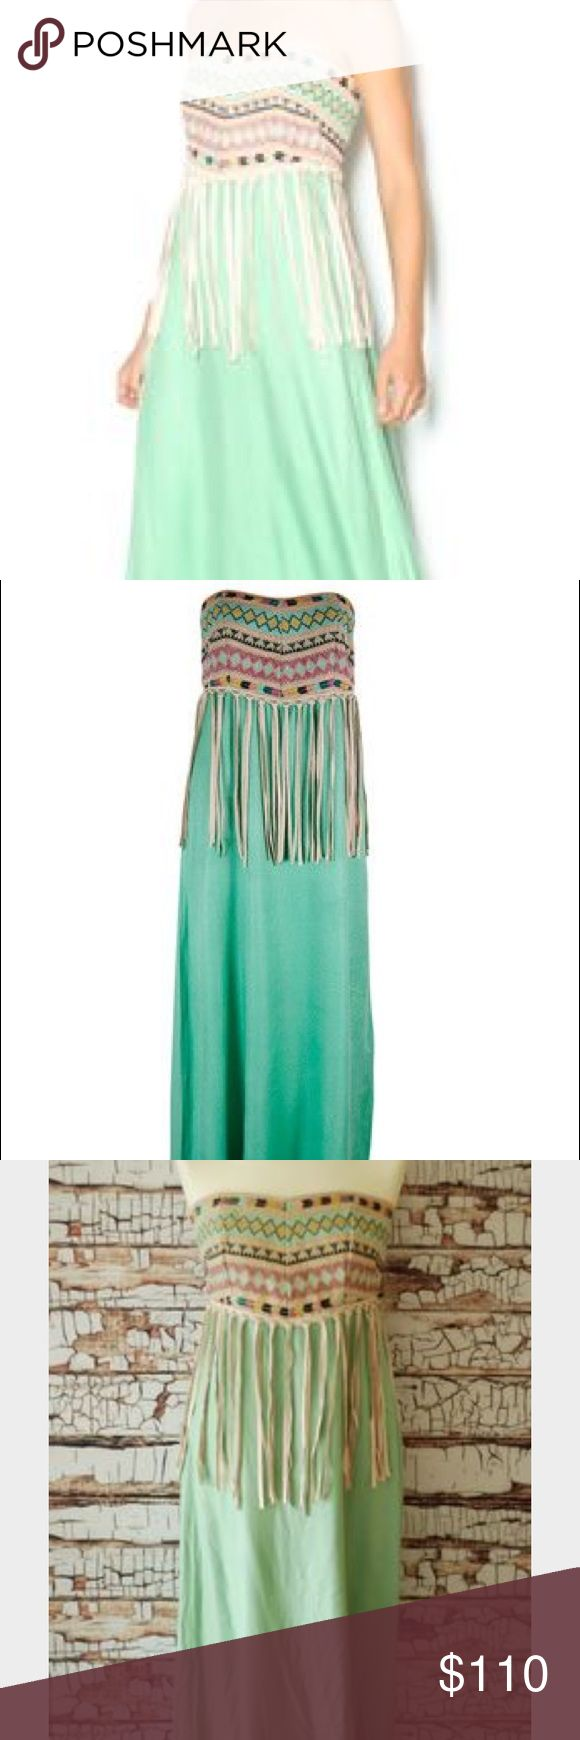 Judith March Mint To Be Fringe Dress Gorgeous long Judith March Maxi dress with Aztec pattern at top and leather fringe 👗 NWT 👗 Perfect dress for any occasion 👗 Size Large 👗 Smoke-free home 👗  Fast shipping Judith March Dresses Maxi